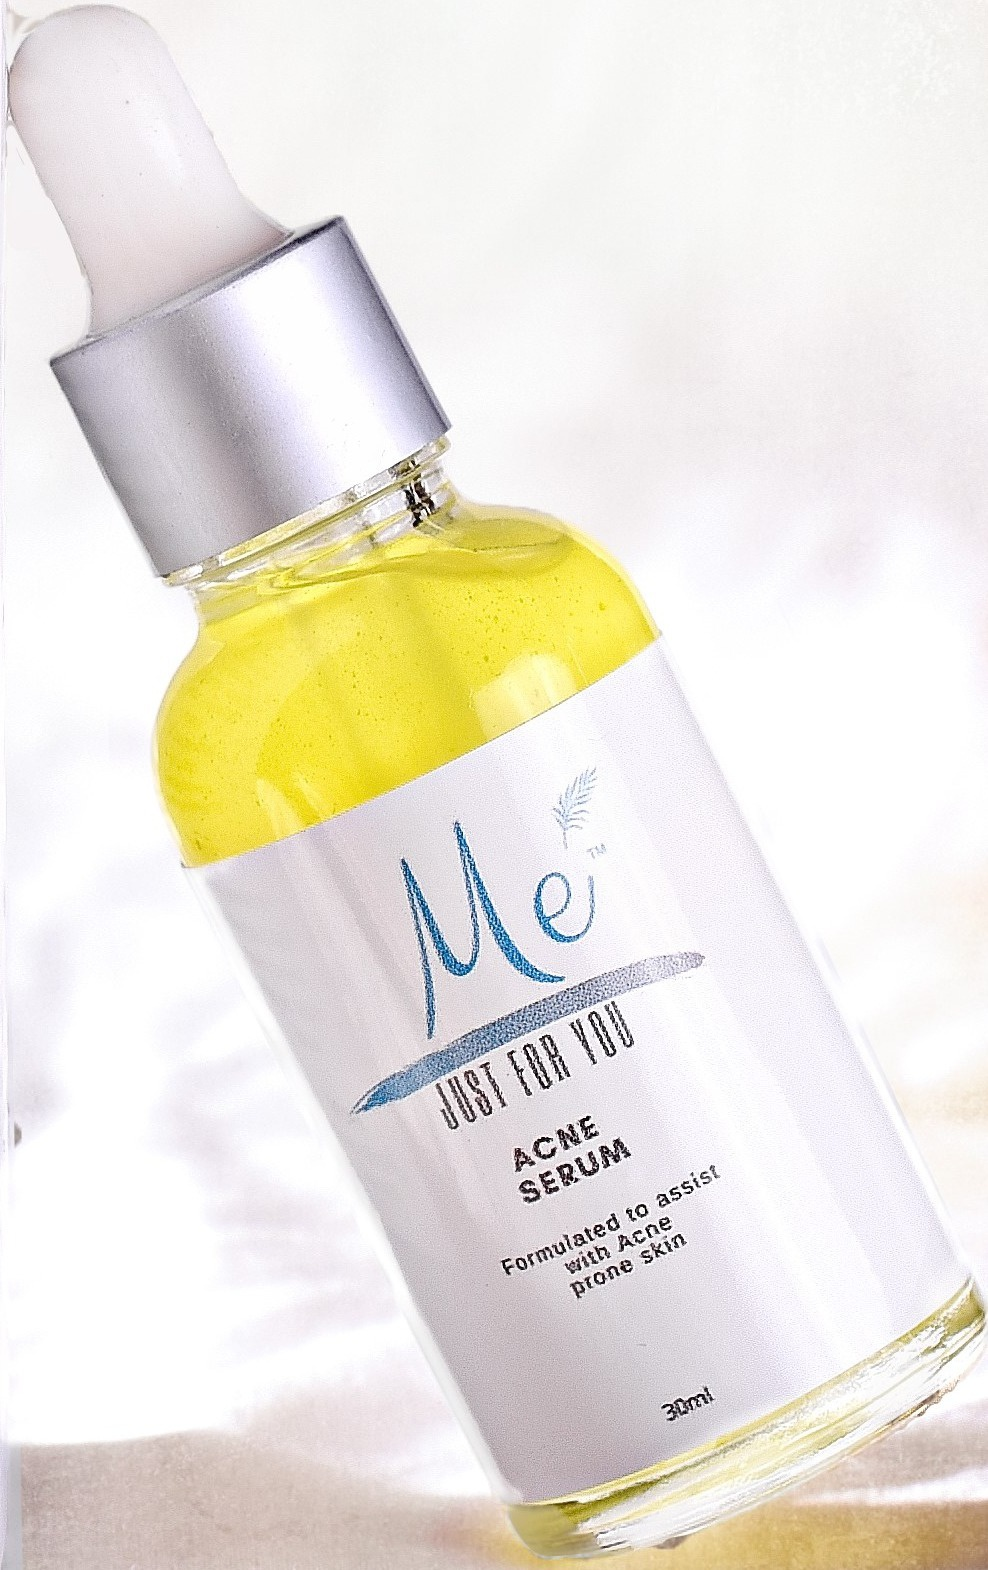 Me-Just For You Acne Serum